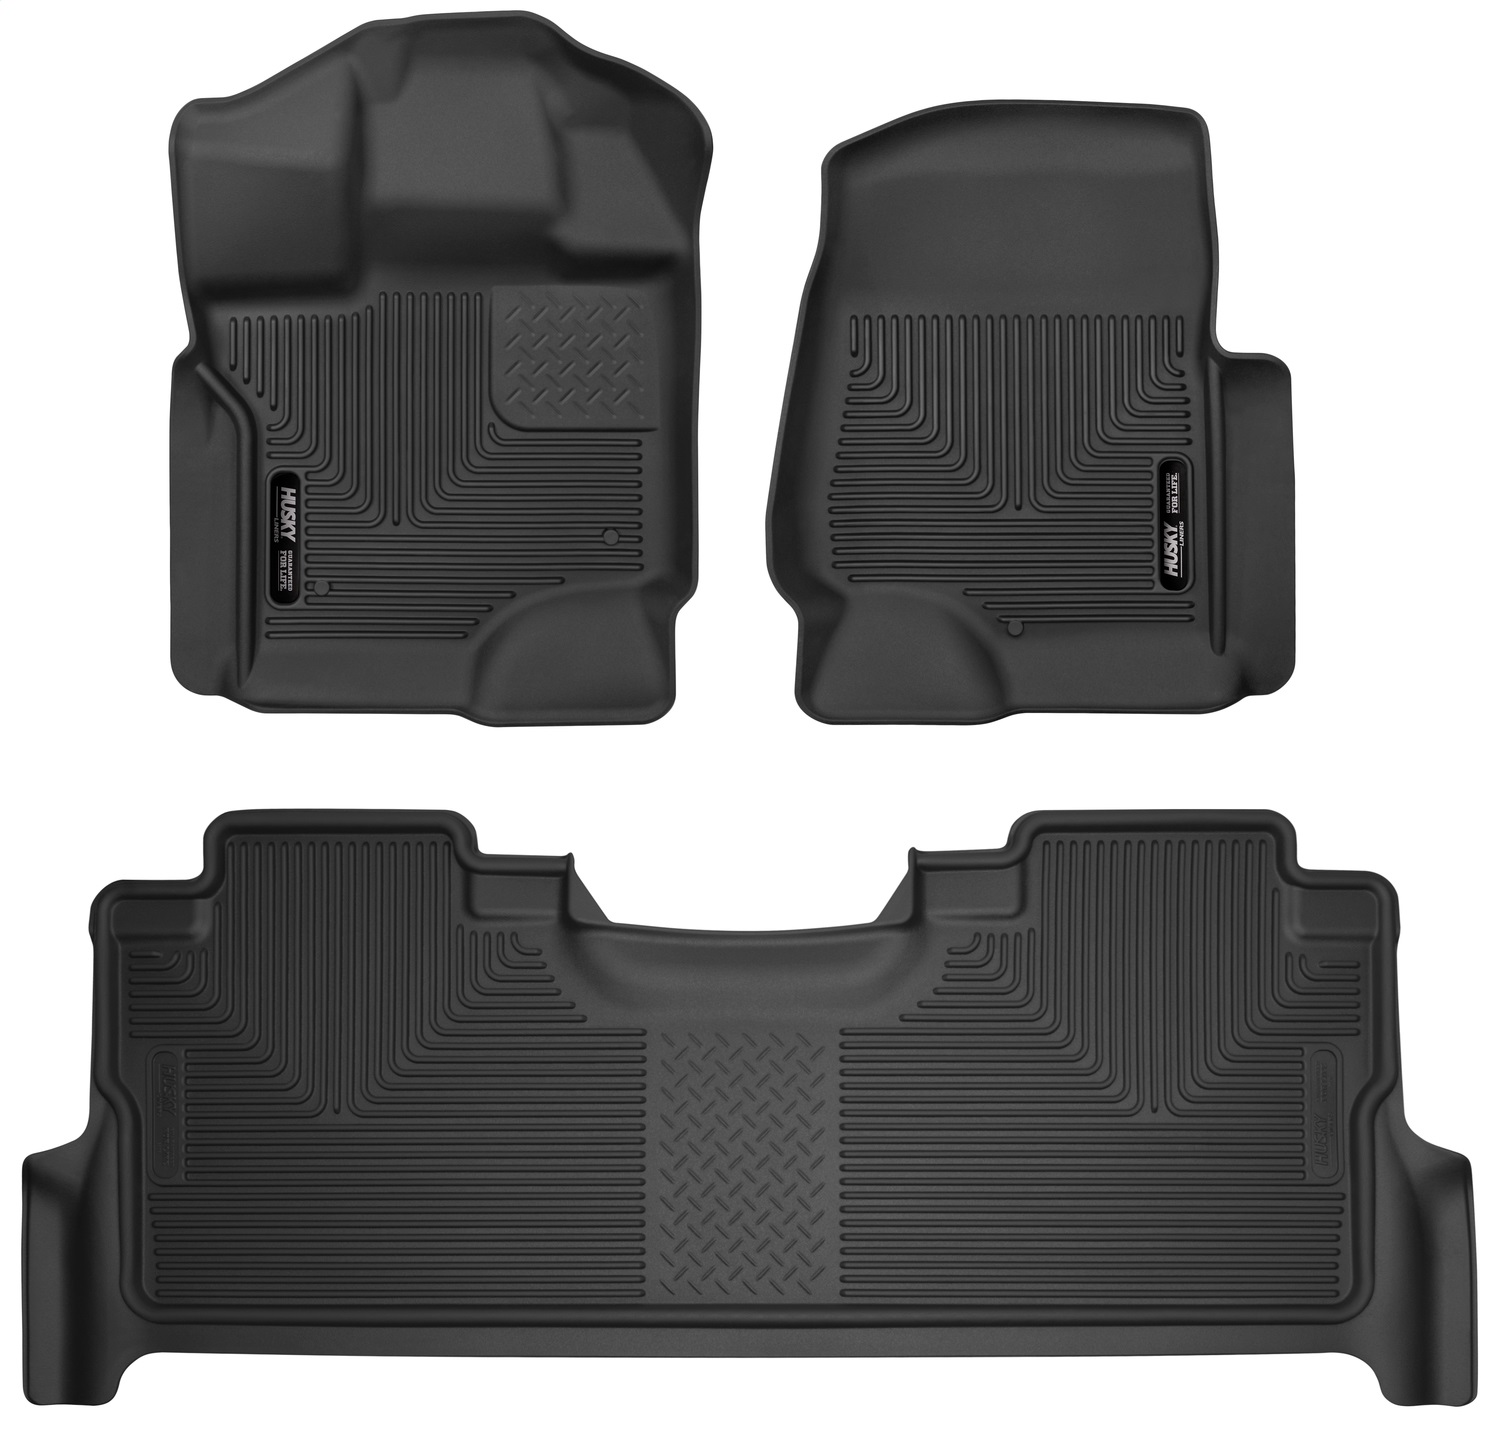 X-act ContourT Floor Liner, Black, 3 pc., Front and Rear